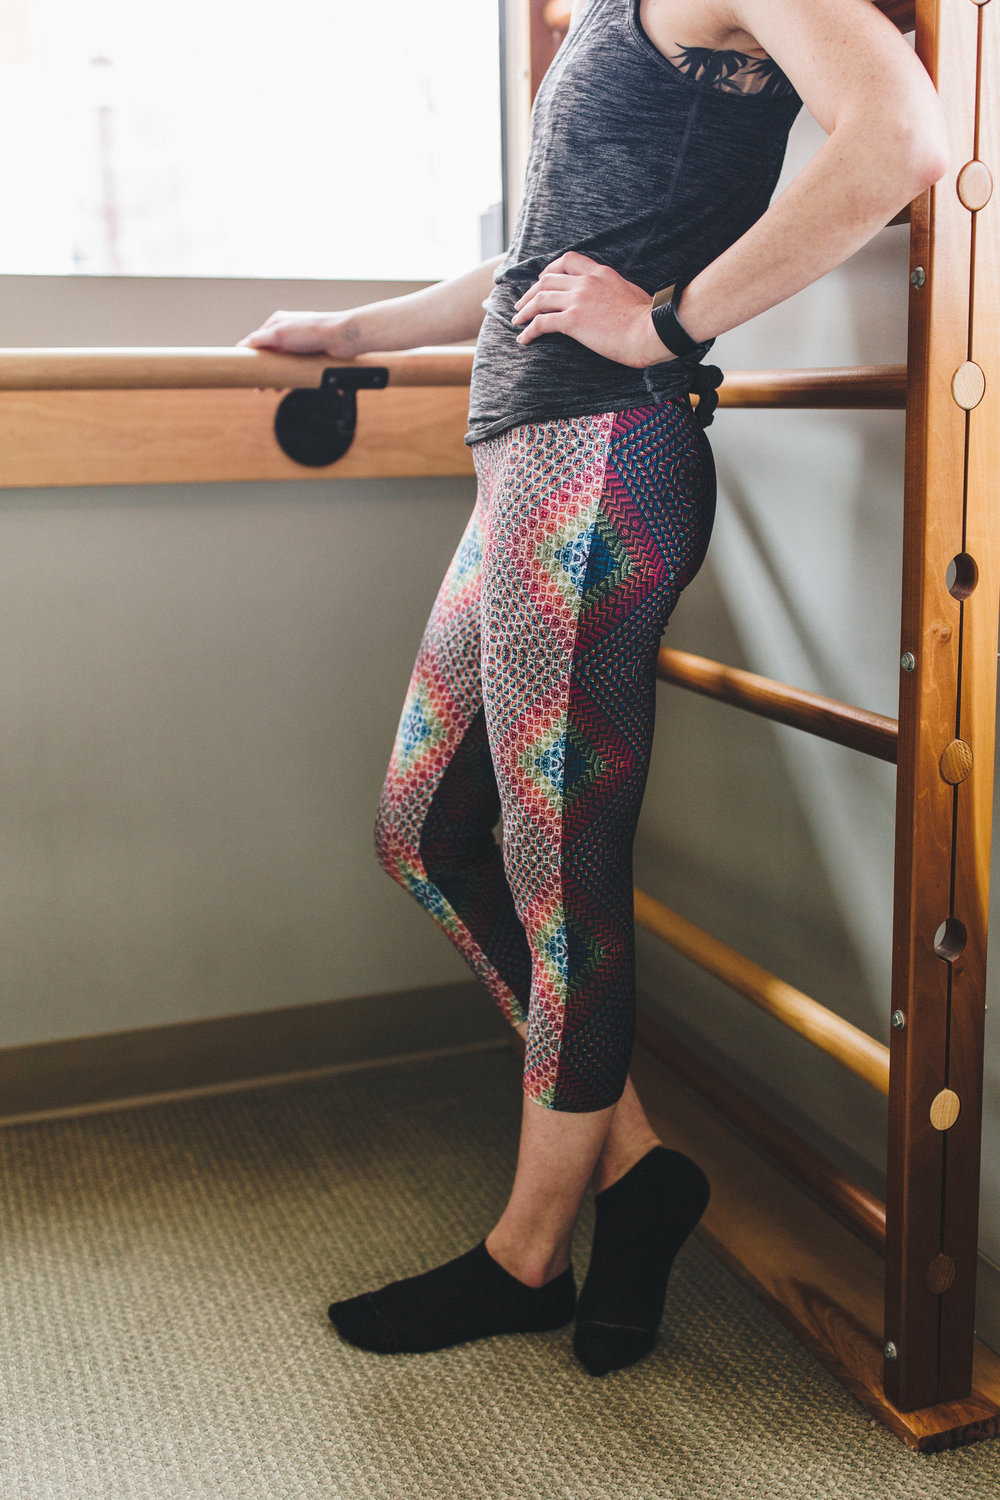 leggings8766.jpg